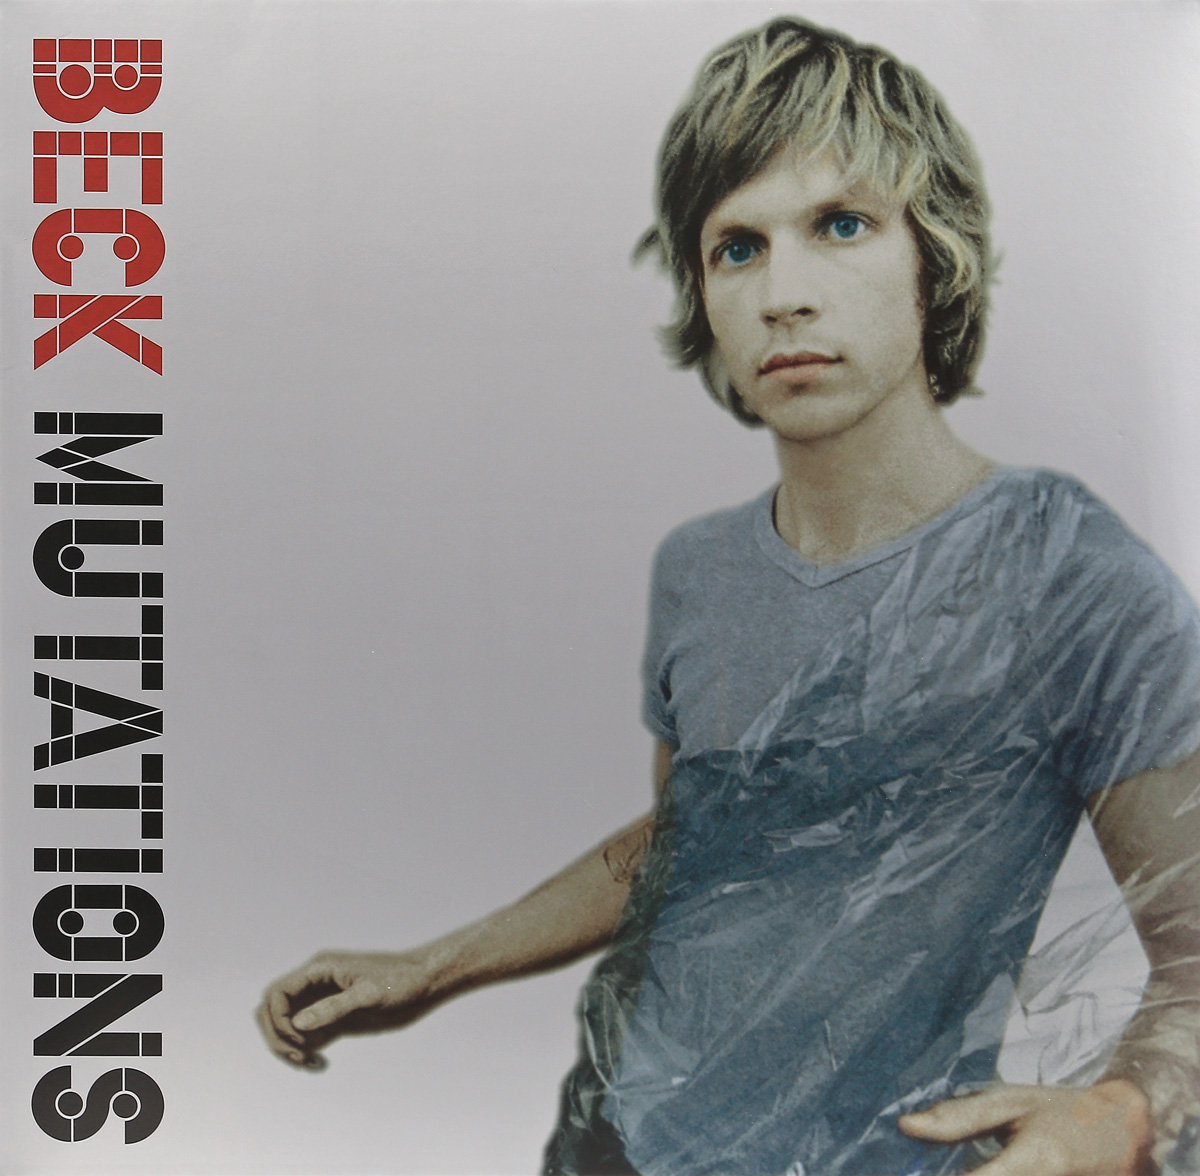 лучшая цена Beck Beck. Mutations (LP)